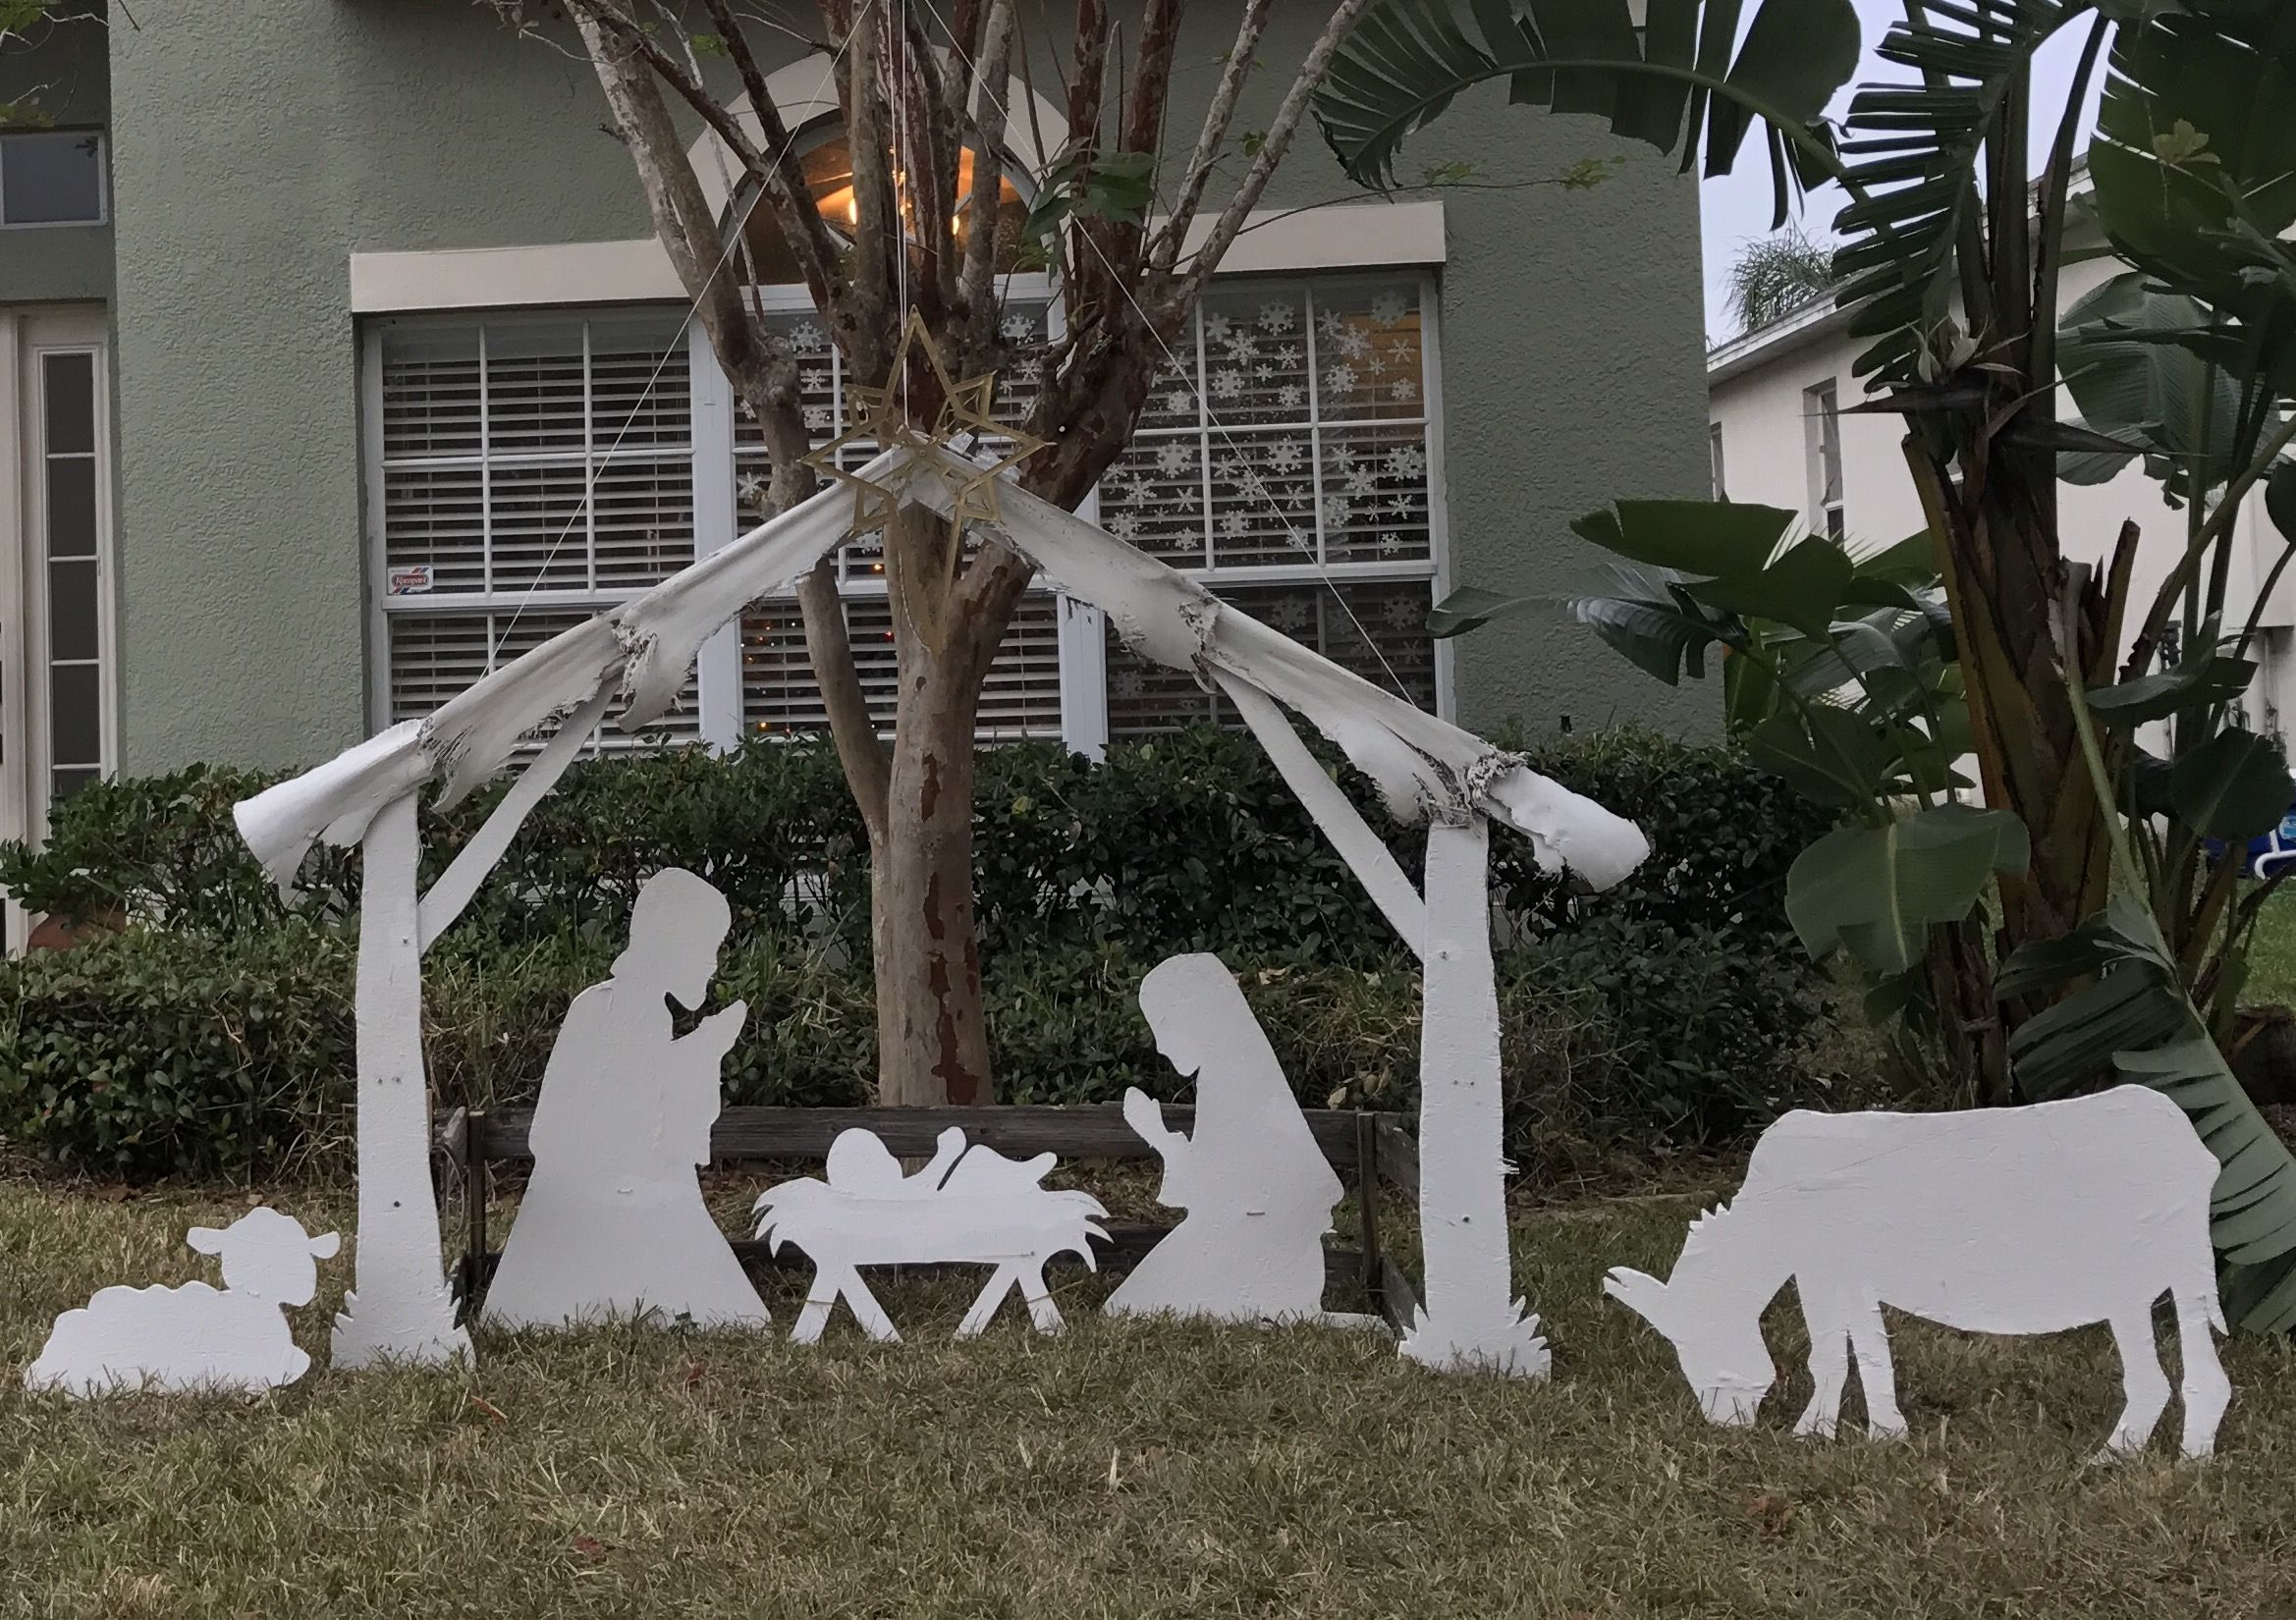 Nativity Silhouette Outdoor Christmas Display Diy Painted Plywood Palm Tree Ro Outside Christmas Decorations Christmas Yard Decorations Outdoor Christmas Diy